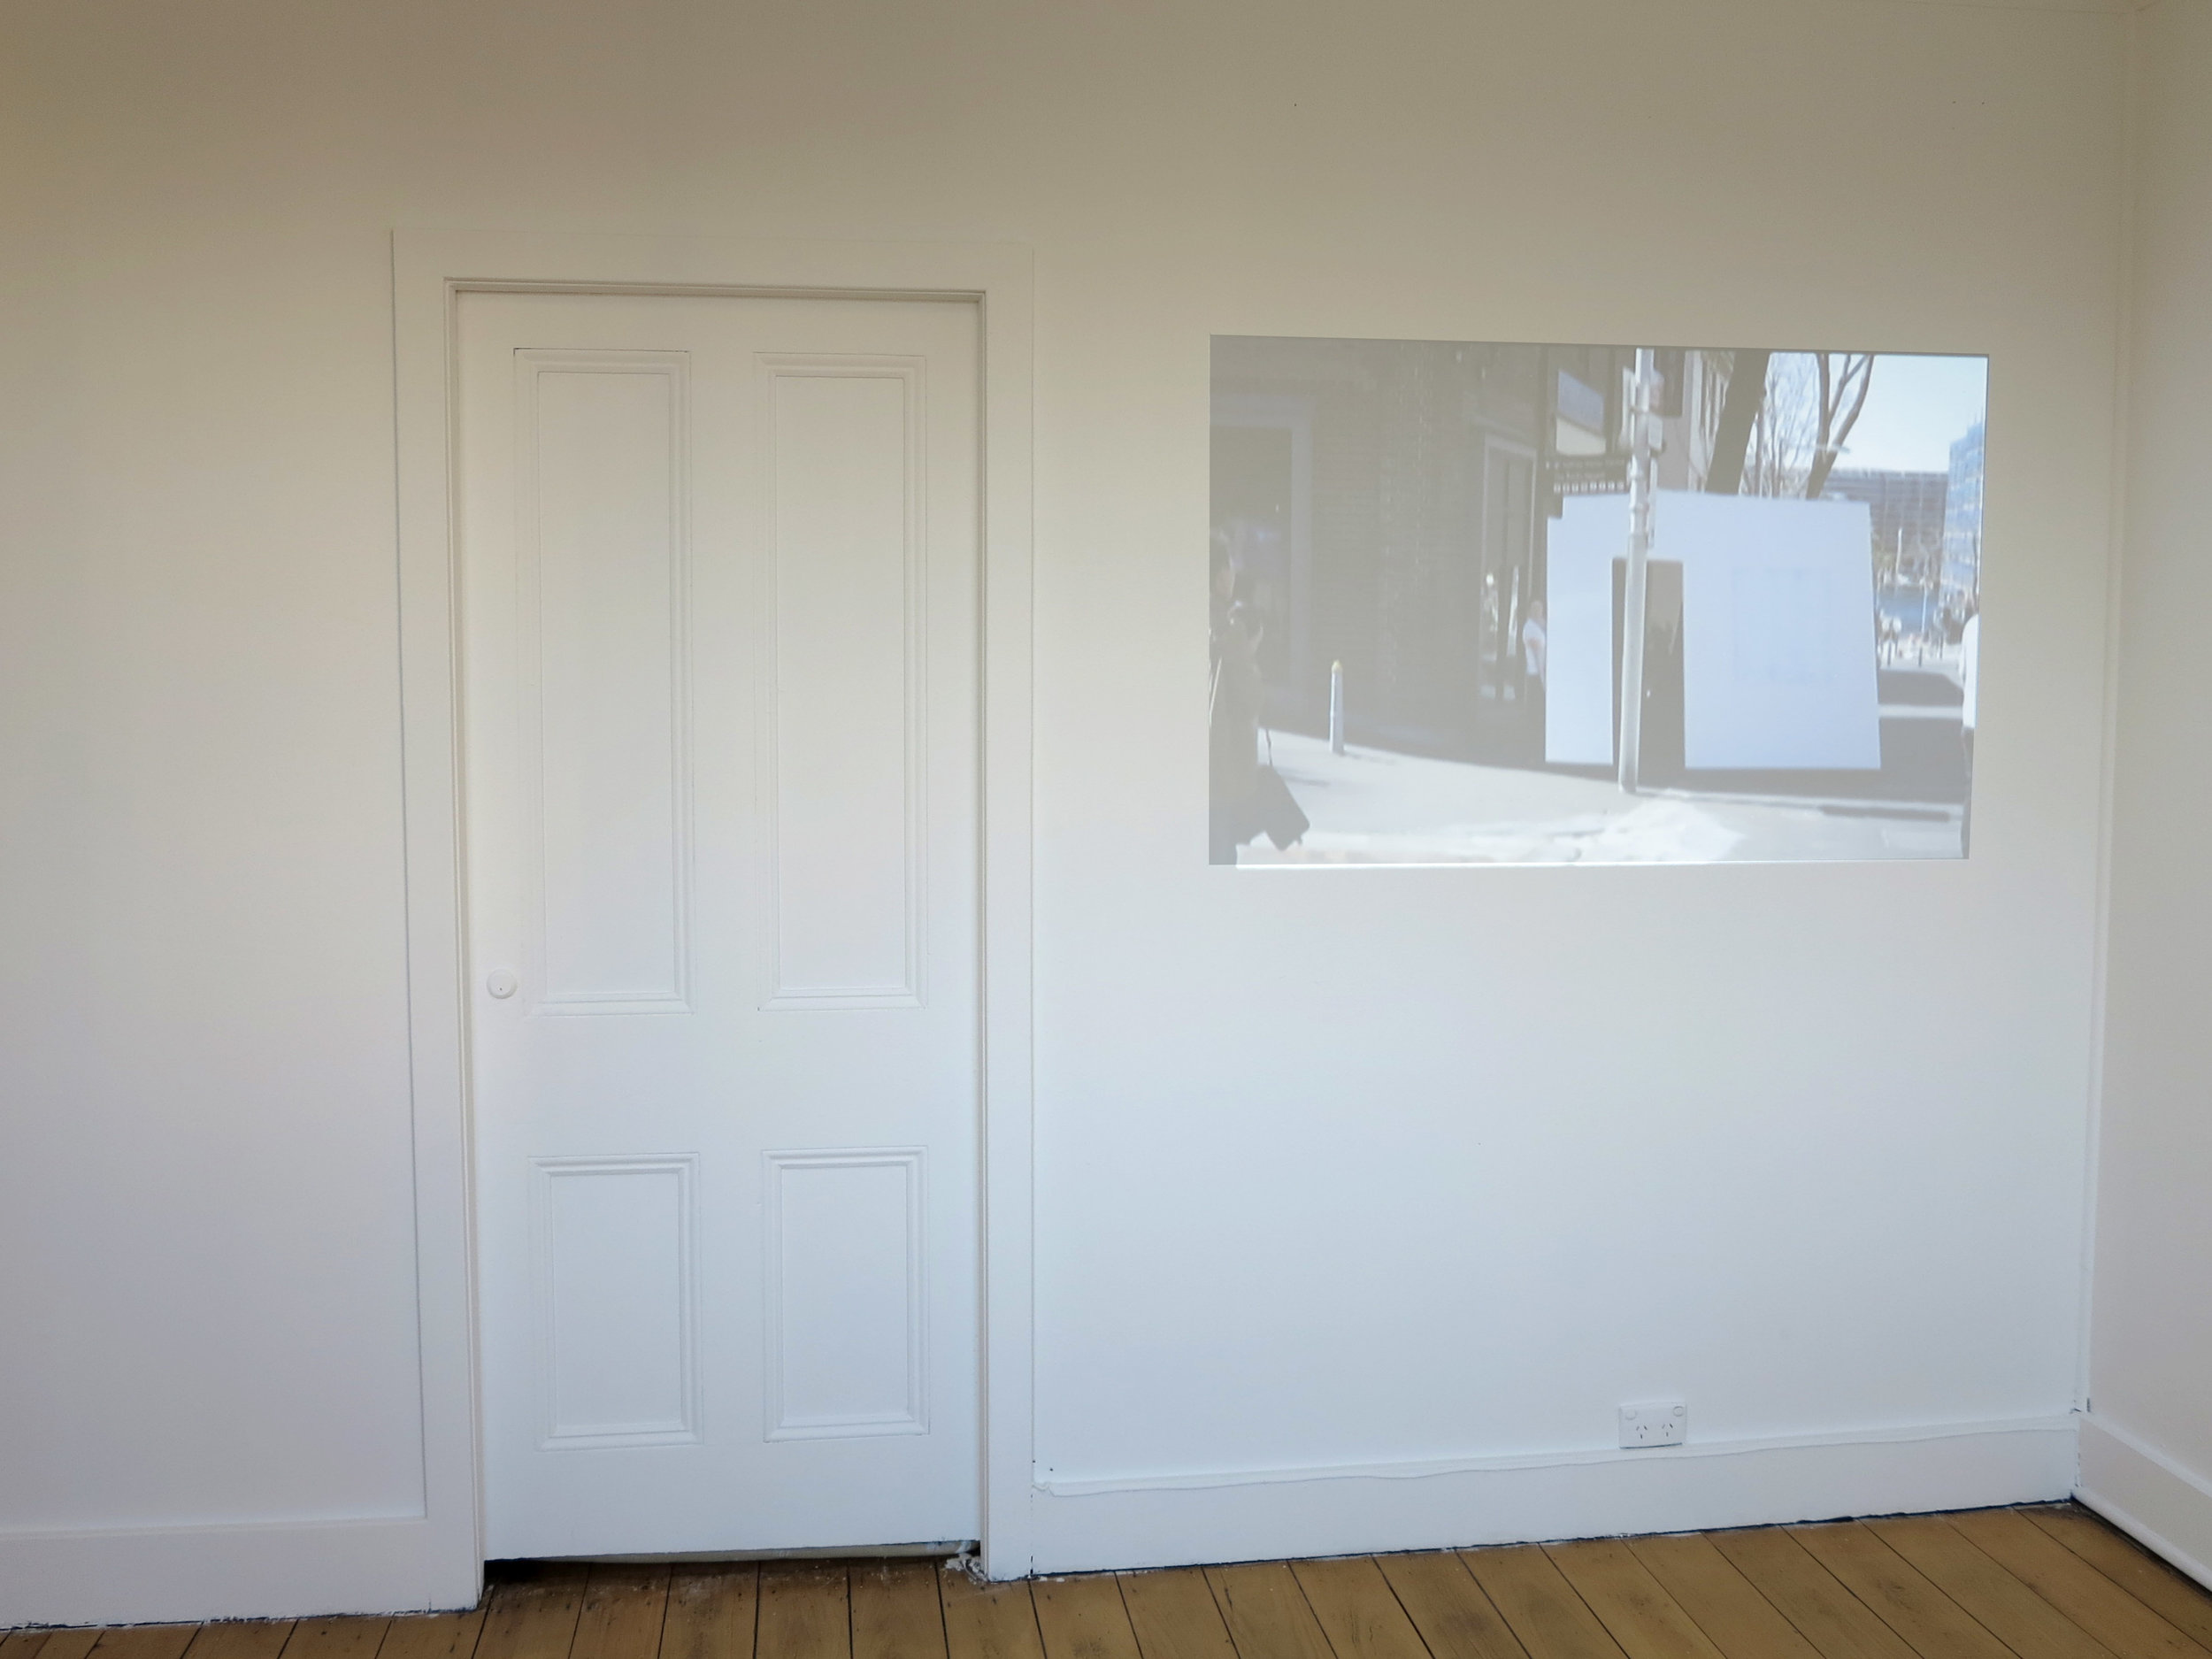 Wall Painting: The Exhibitions, 2013